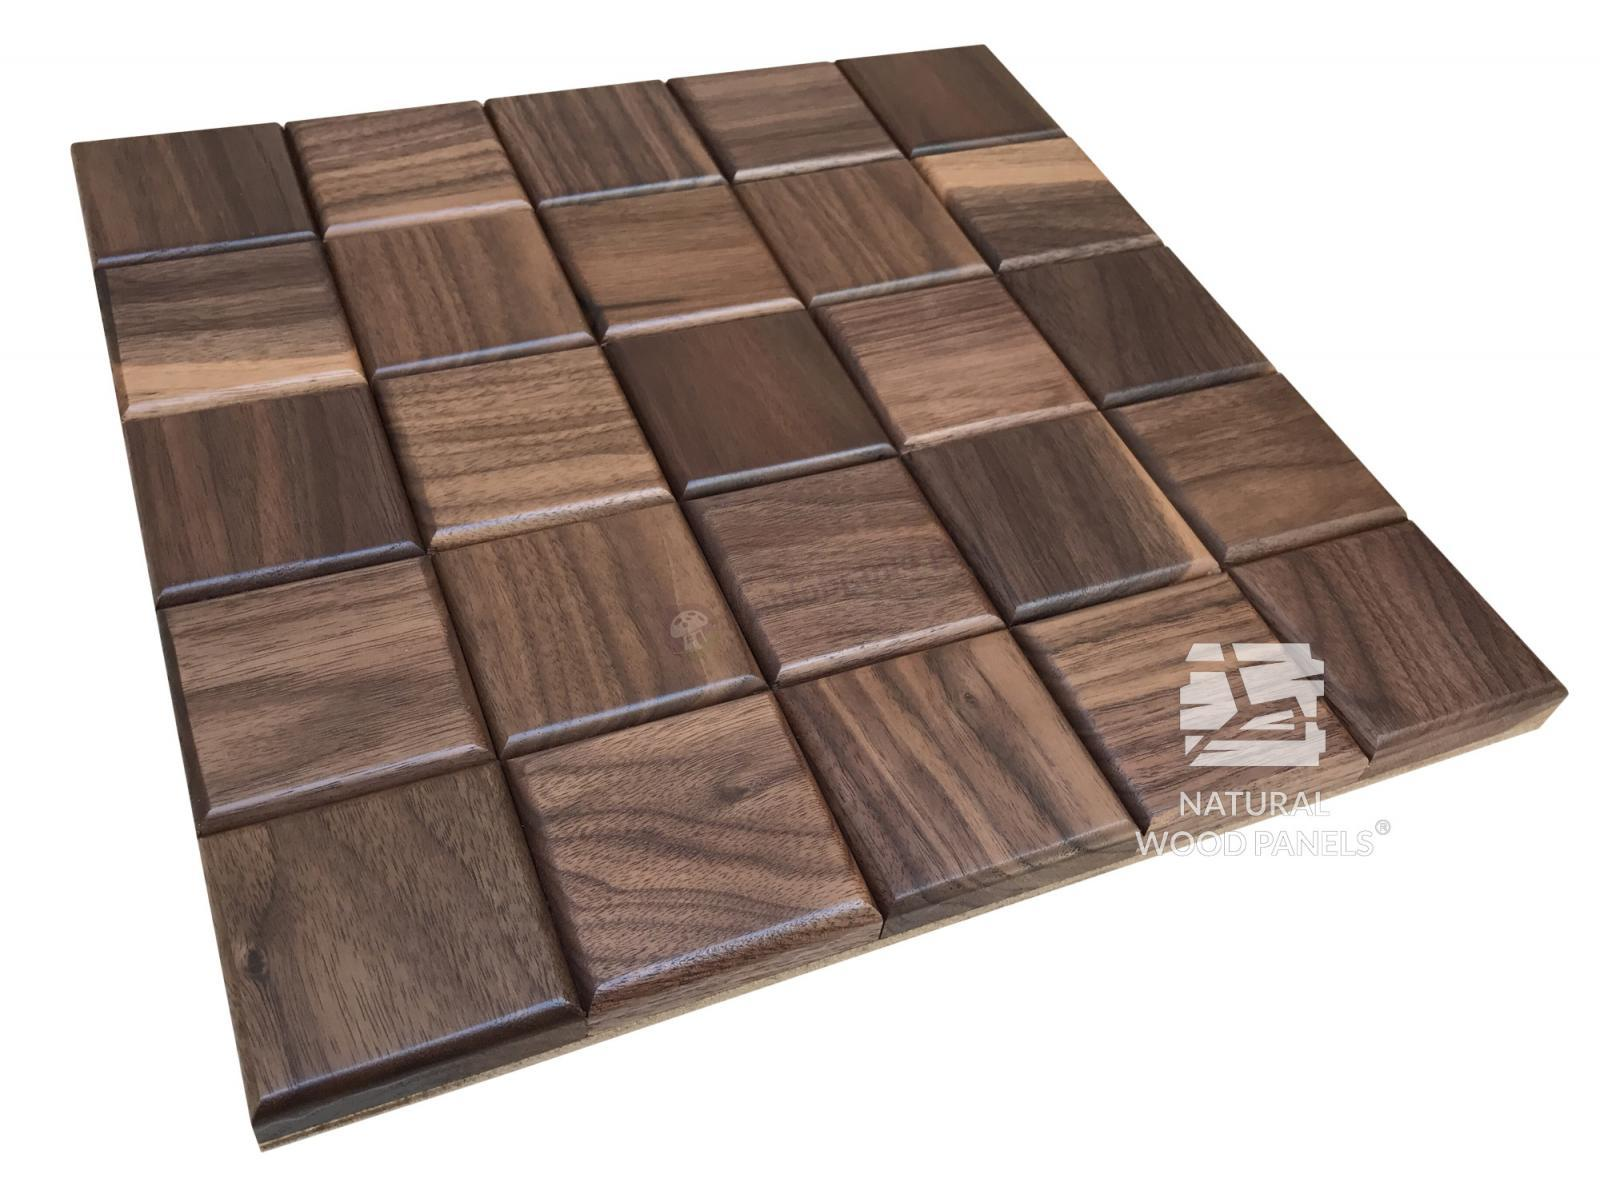 Panele CHOCO LUXURY series – Orzech amerykański Natural Wood Panels